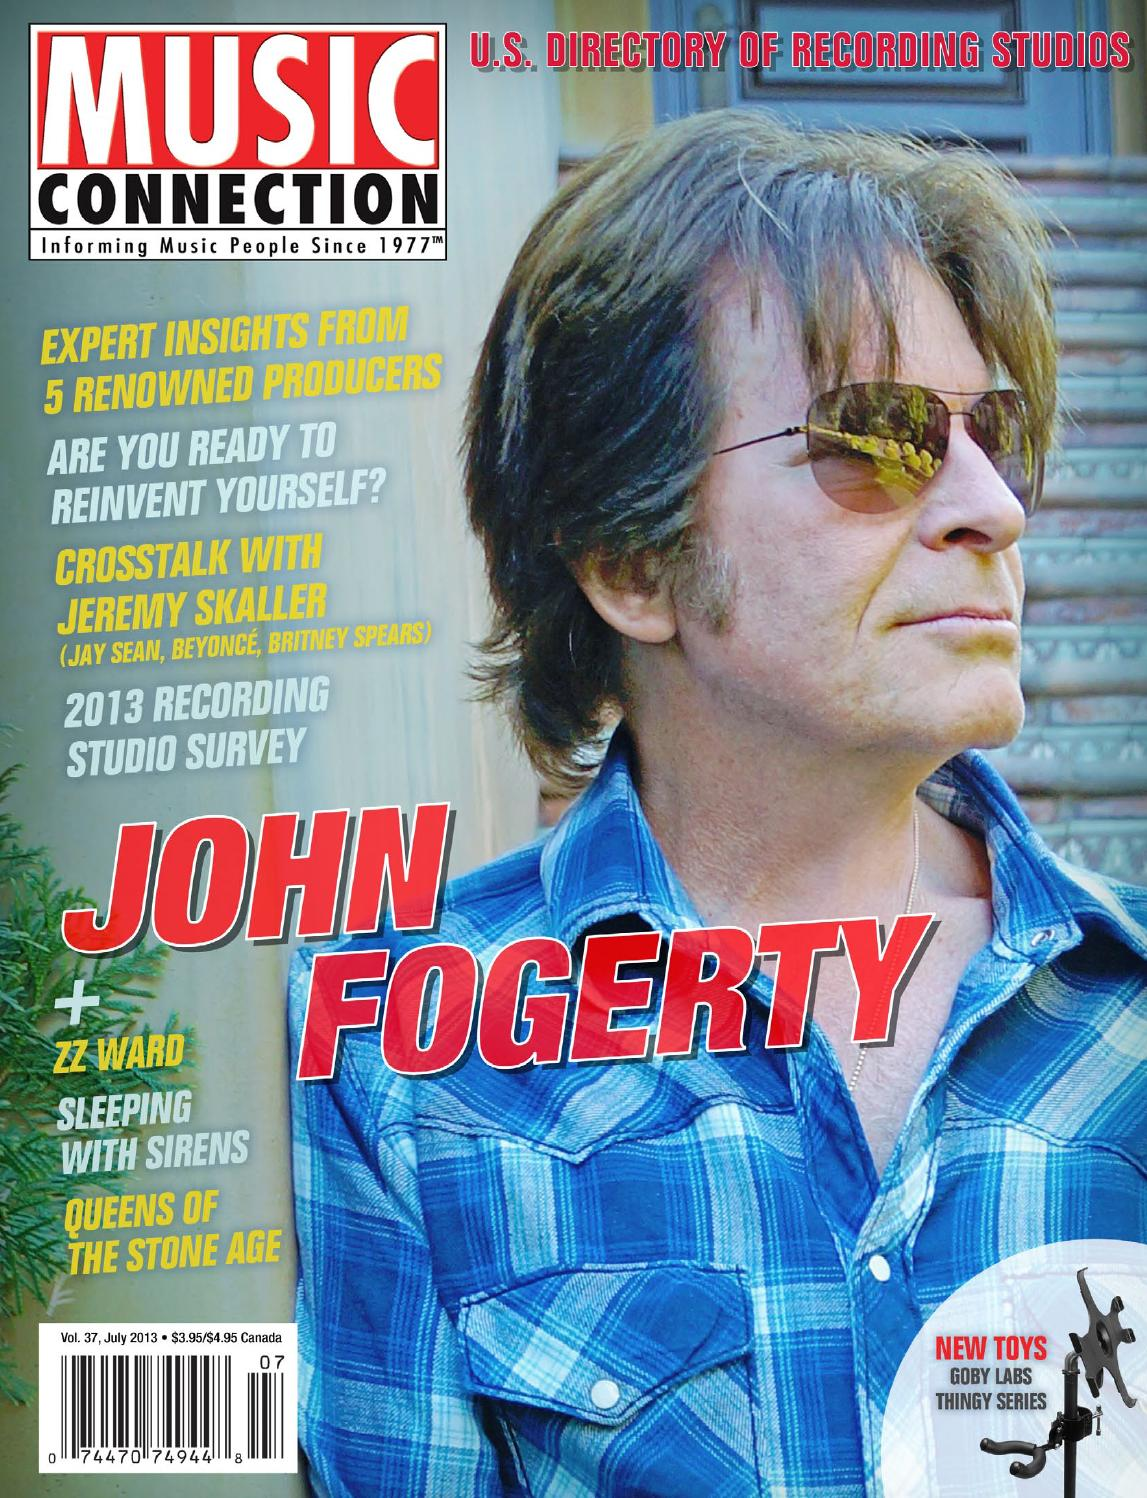 Mcjuly2013 by Music Connection - issuu